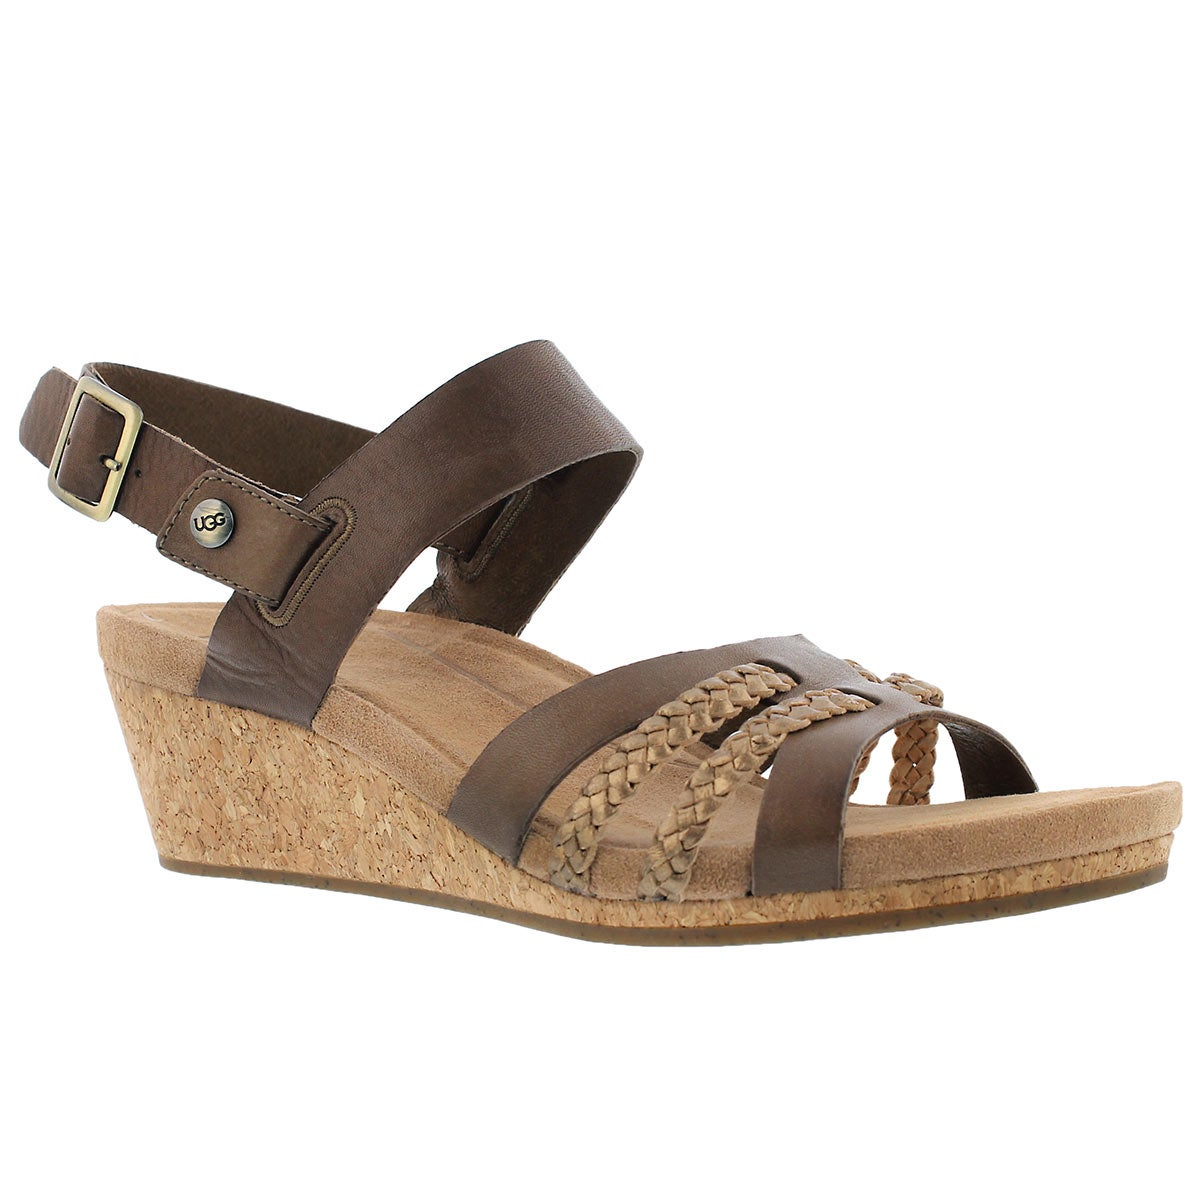 Lds Serinda mole ankle strap wedge sndl